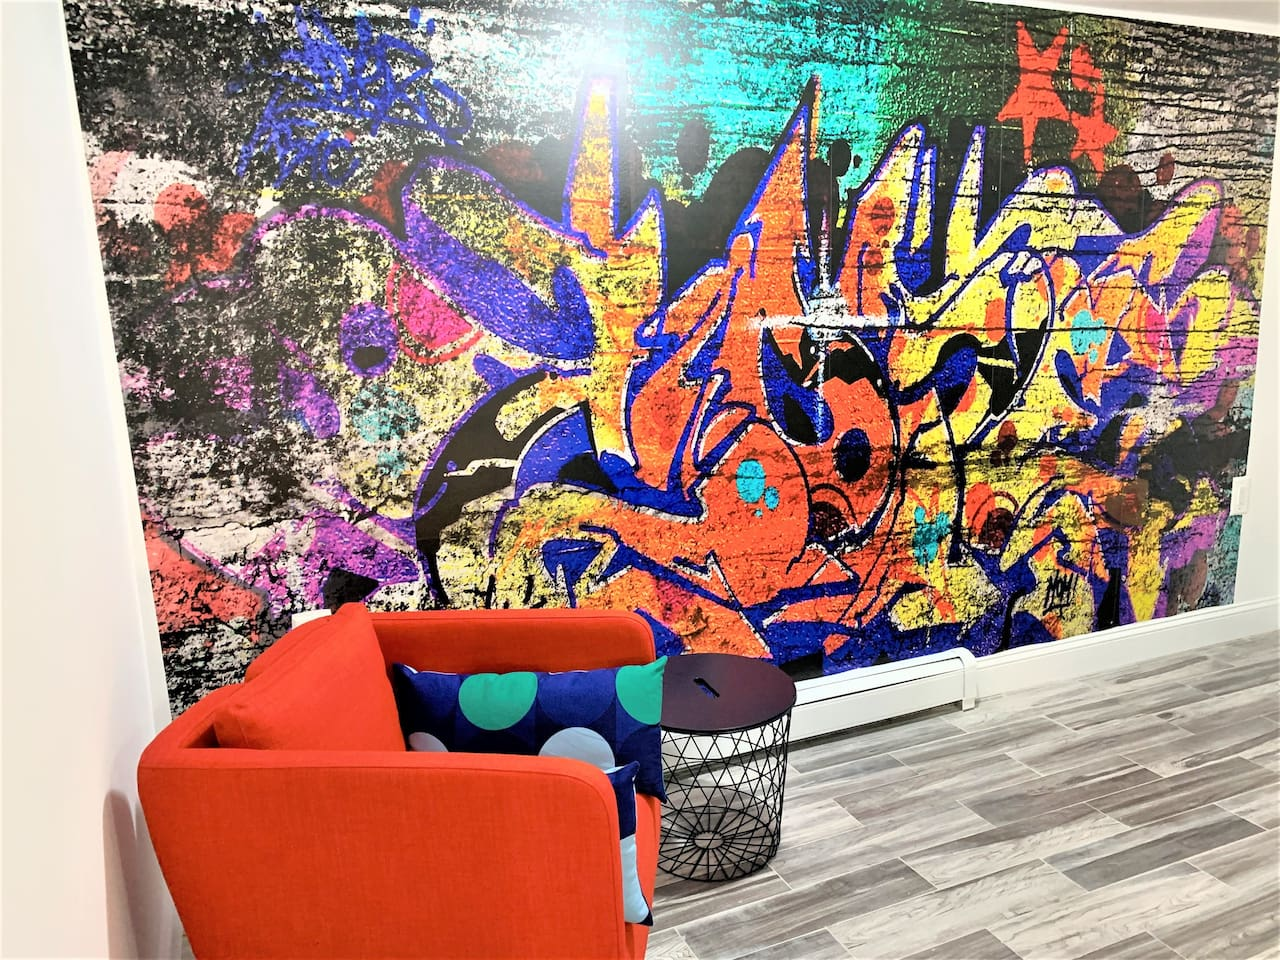 This stylish, Bushwick studio is designed to emulate the vibrant graffiti culture in the neighborhood.